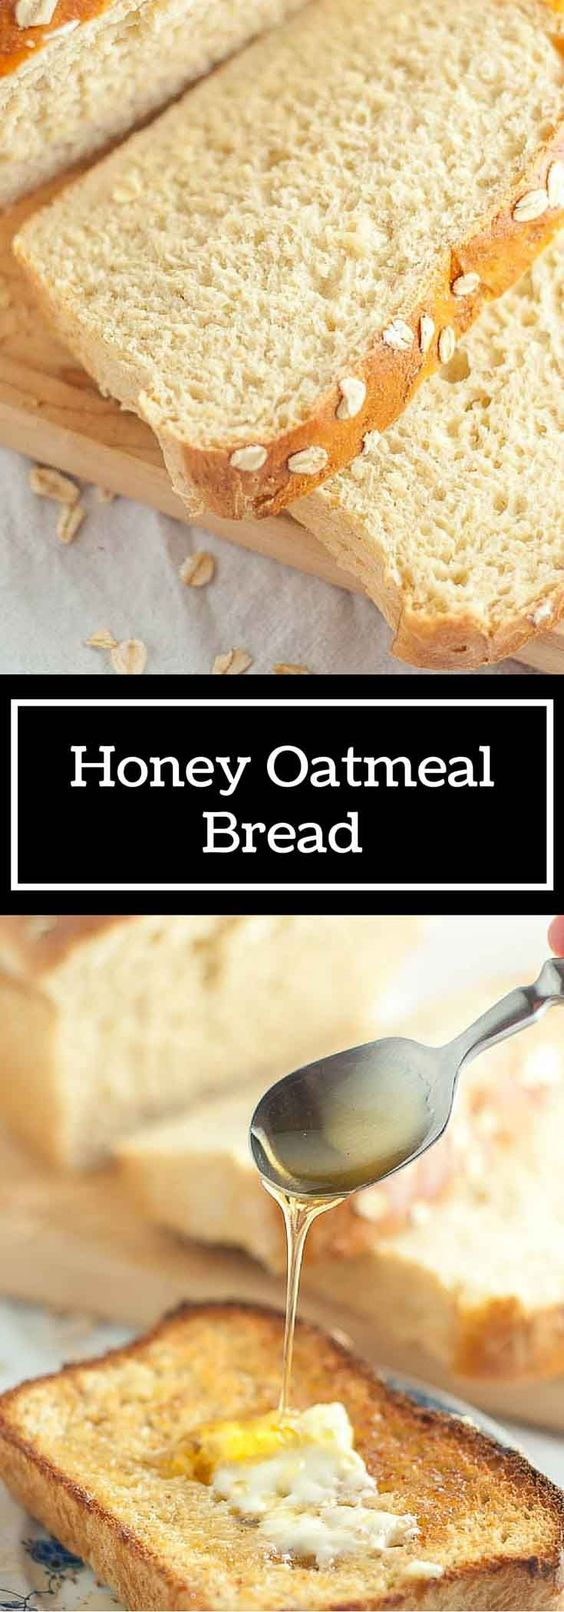 This Honey Oatmeal Bread recipe is an all-time favorite! It's light, airy, a touch sweet, and has a spongy crumb. It is an absolute perfect bread recipe! http://www.mamagourmand.com